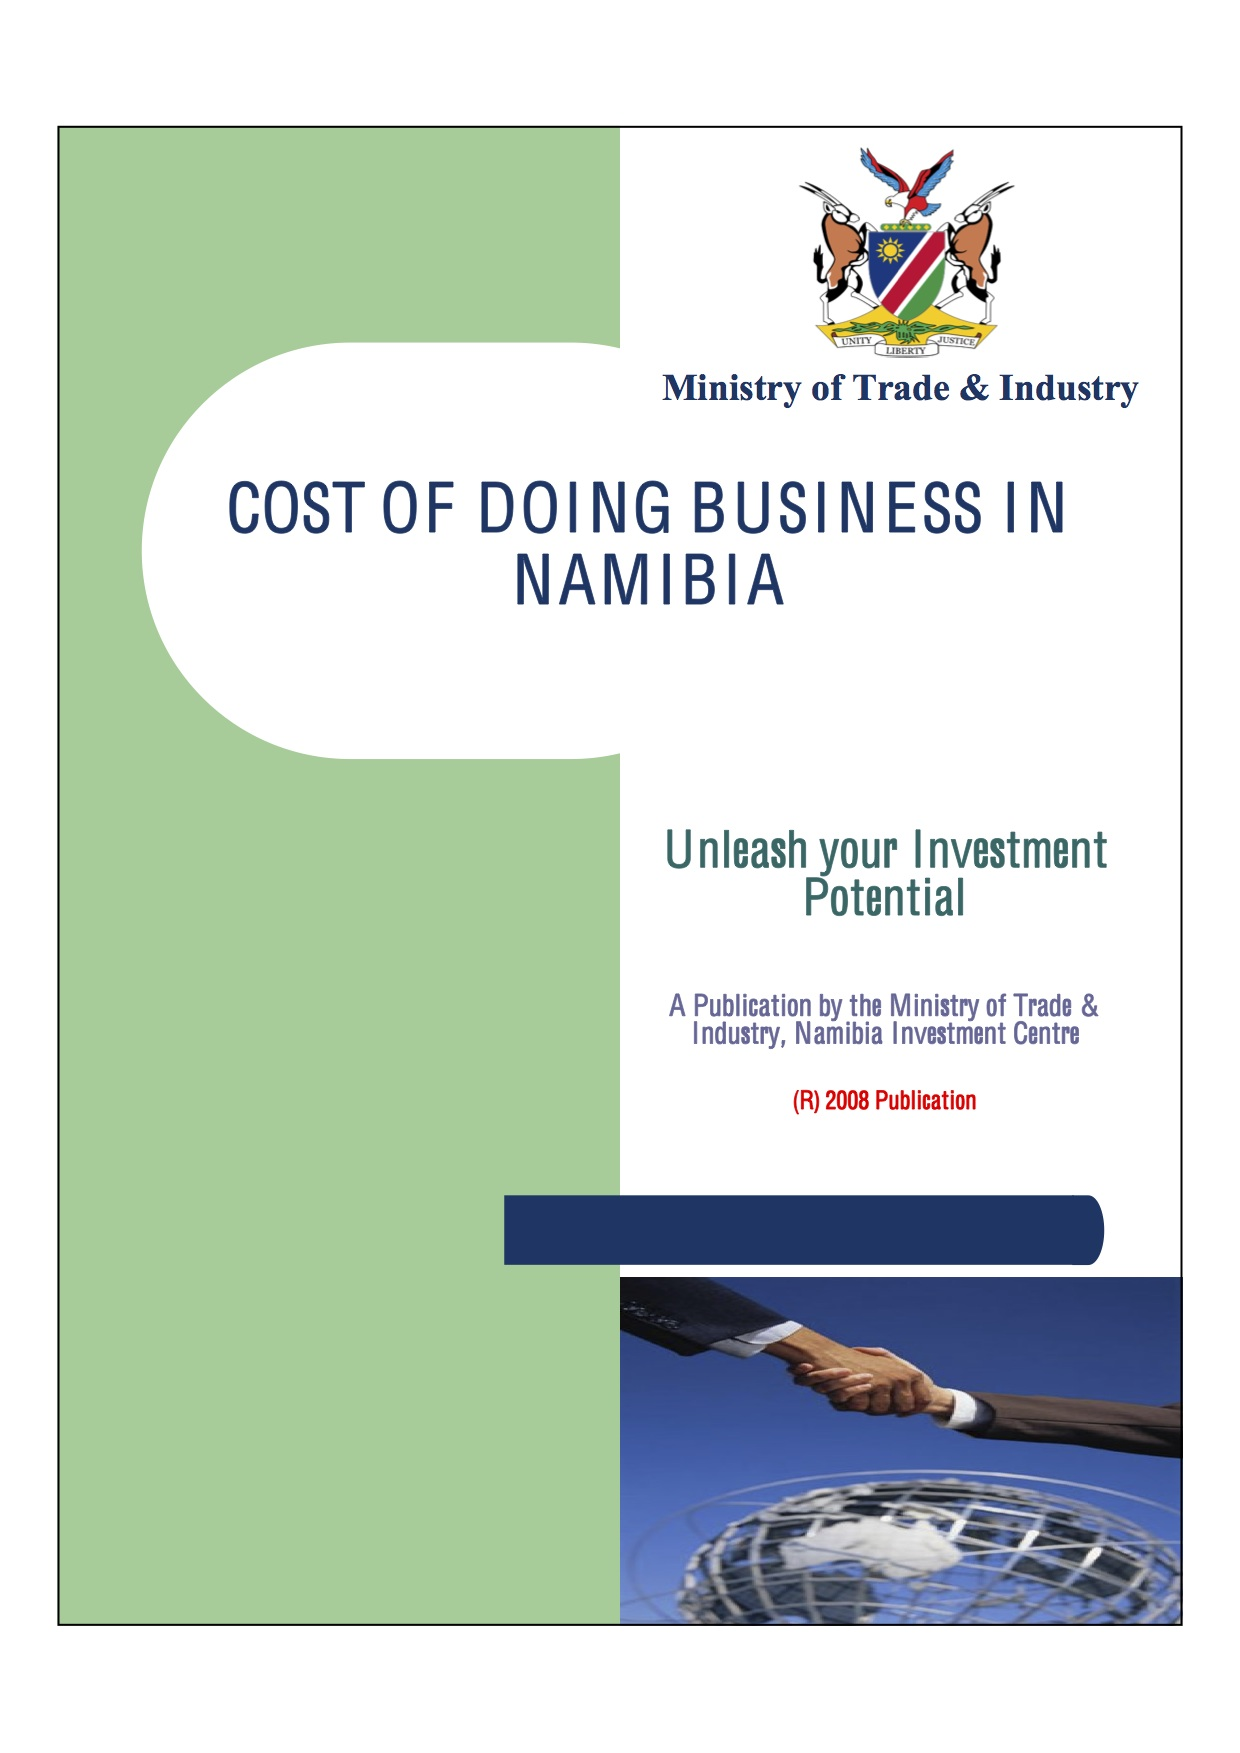 Cost_of_Doing_Business_in_Namibia_cover.jpg